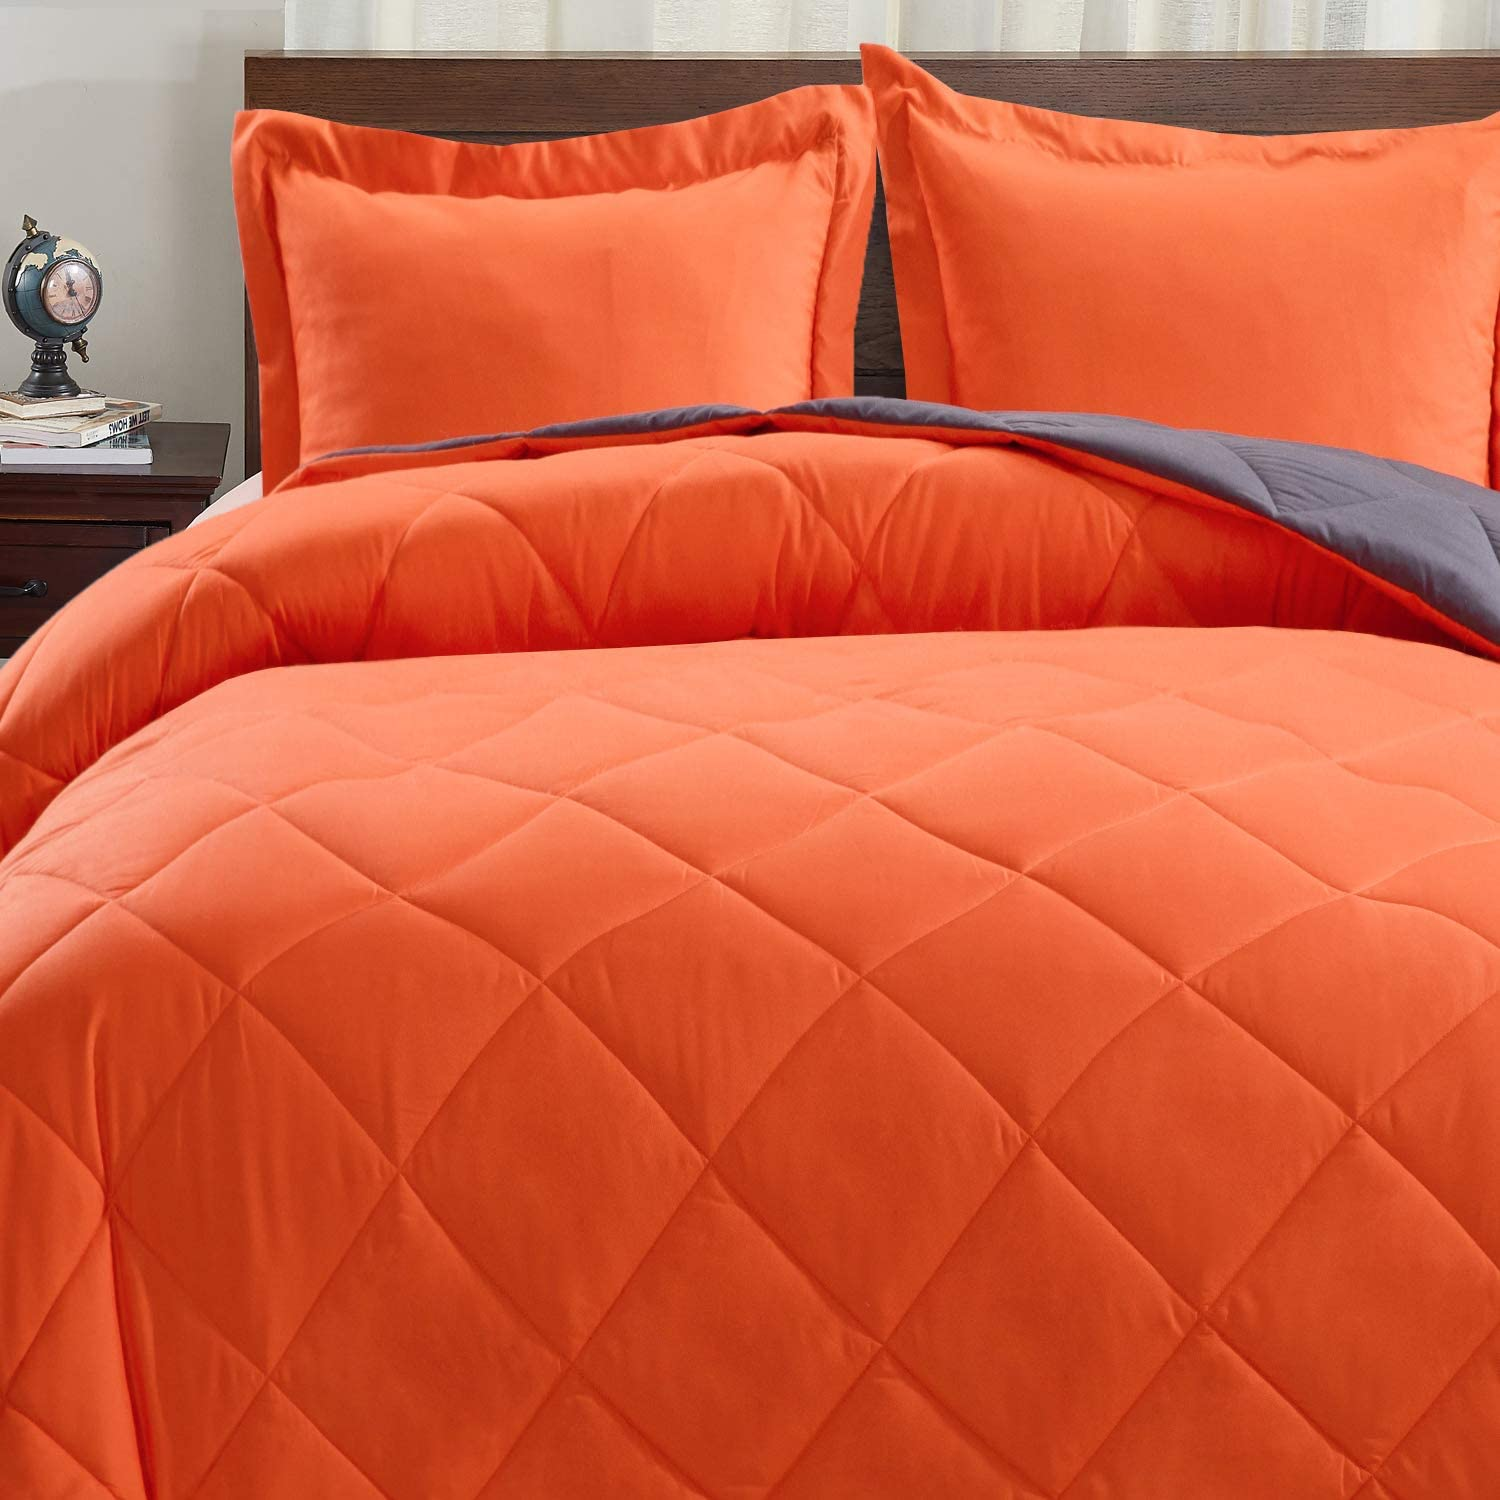 Basic Beyond Down Alternative Comforter Set (King, Flame/Charcoal Gray) - Reversible Bed Comforter with 2 Pillow Shams for All Seasons